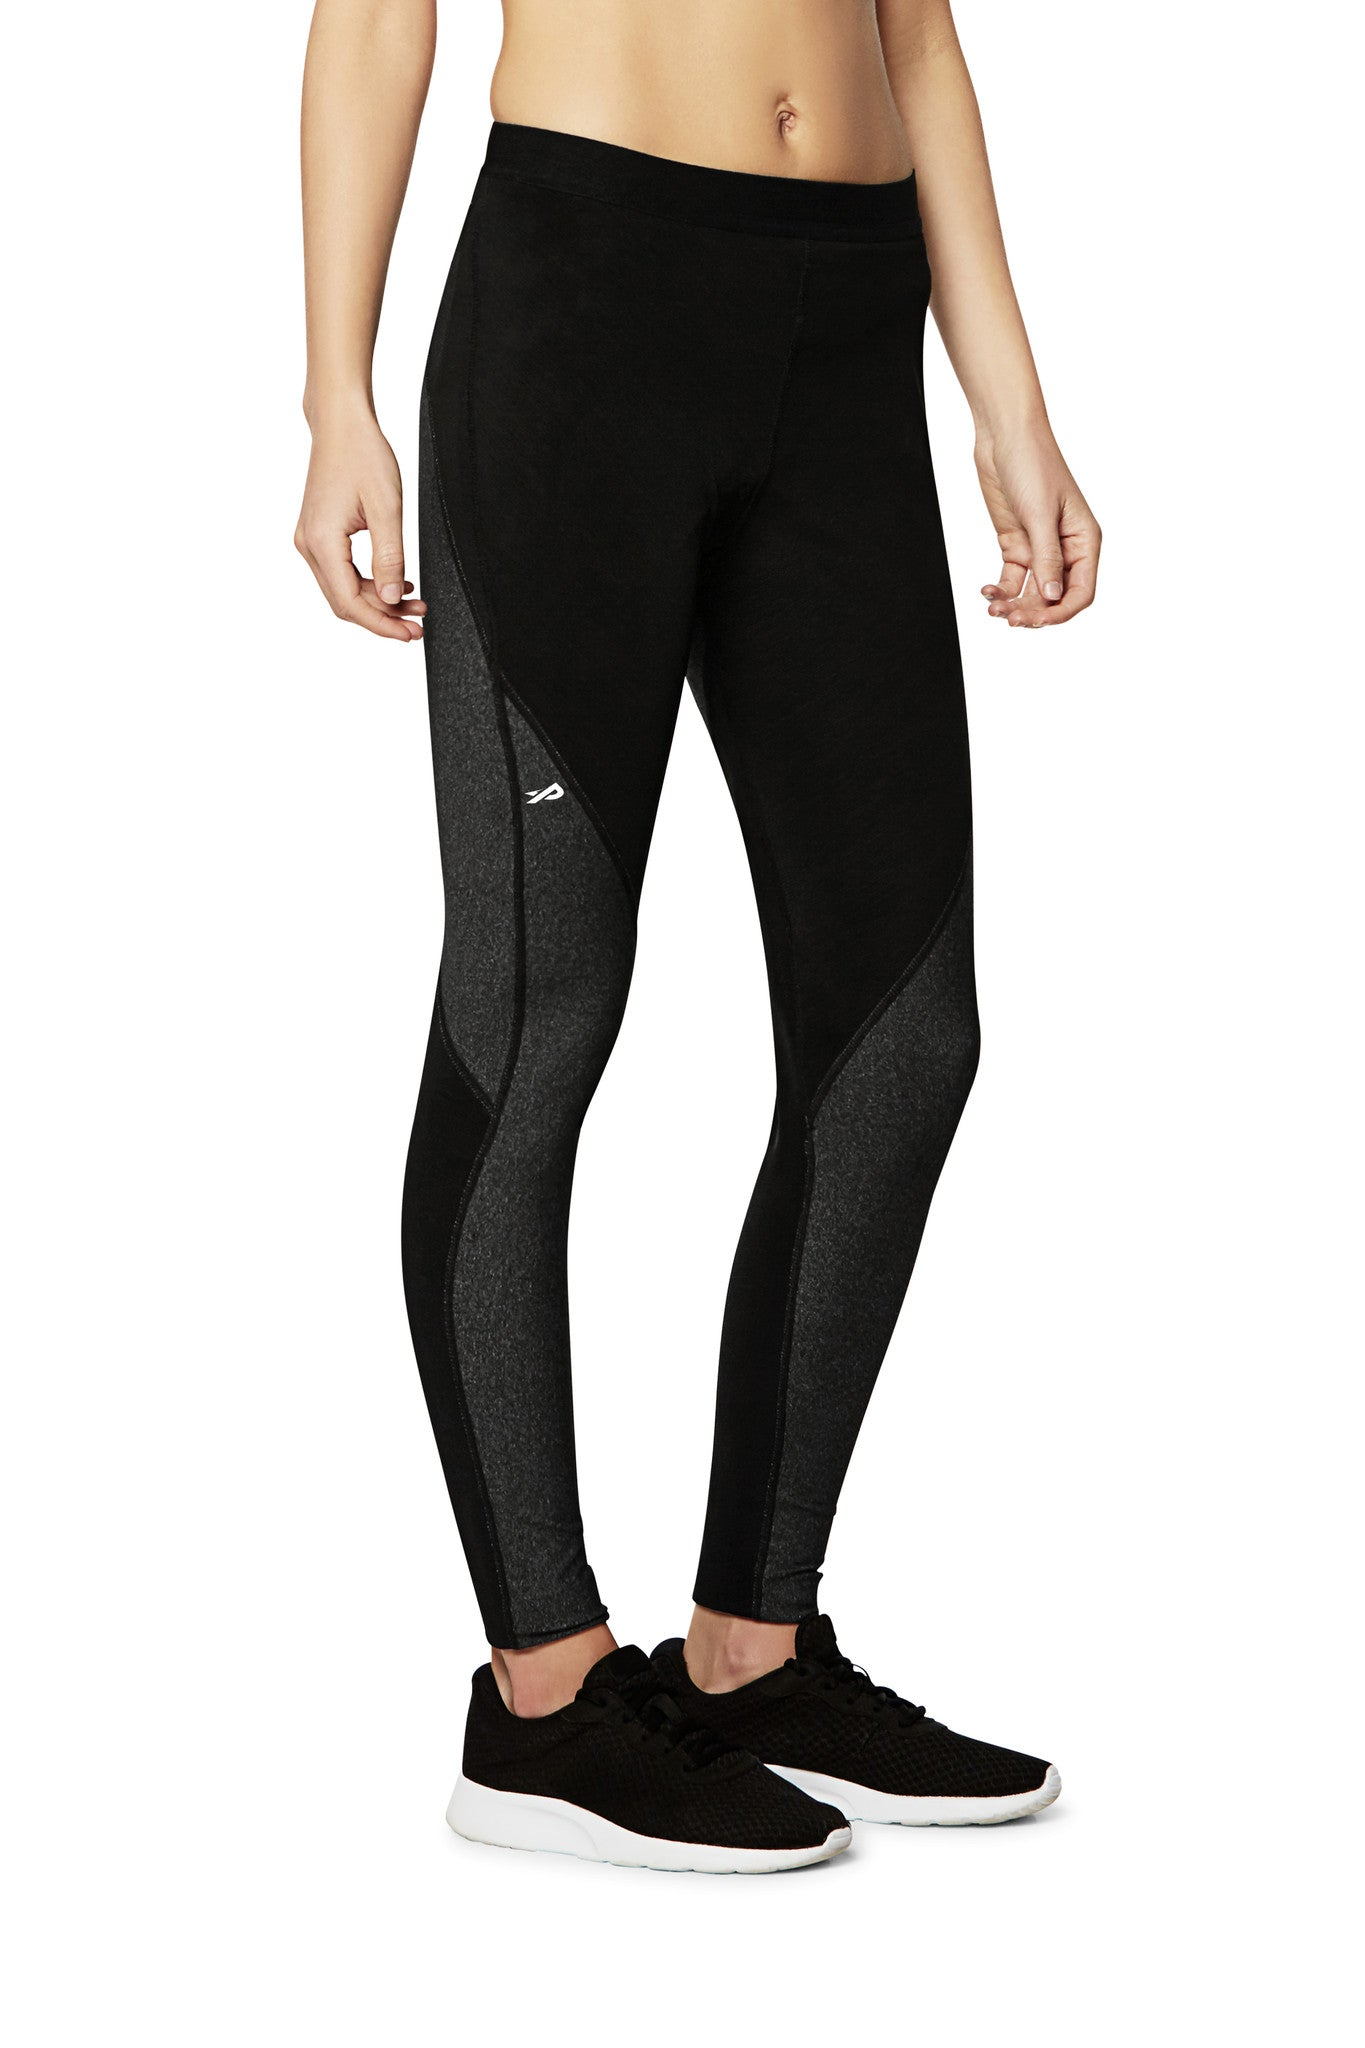 Pro Resistance Tights for Women - Athletic Grey